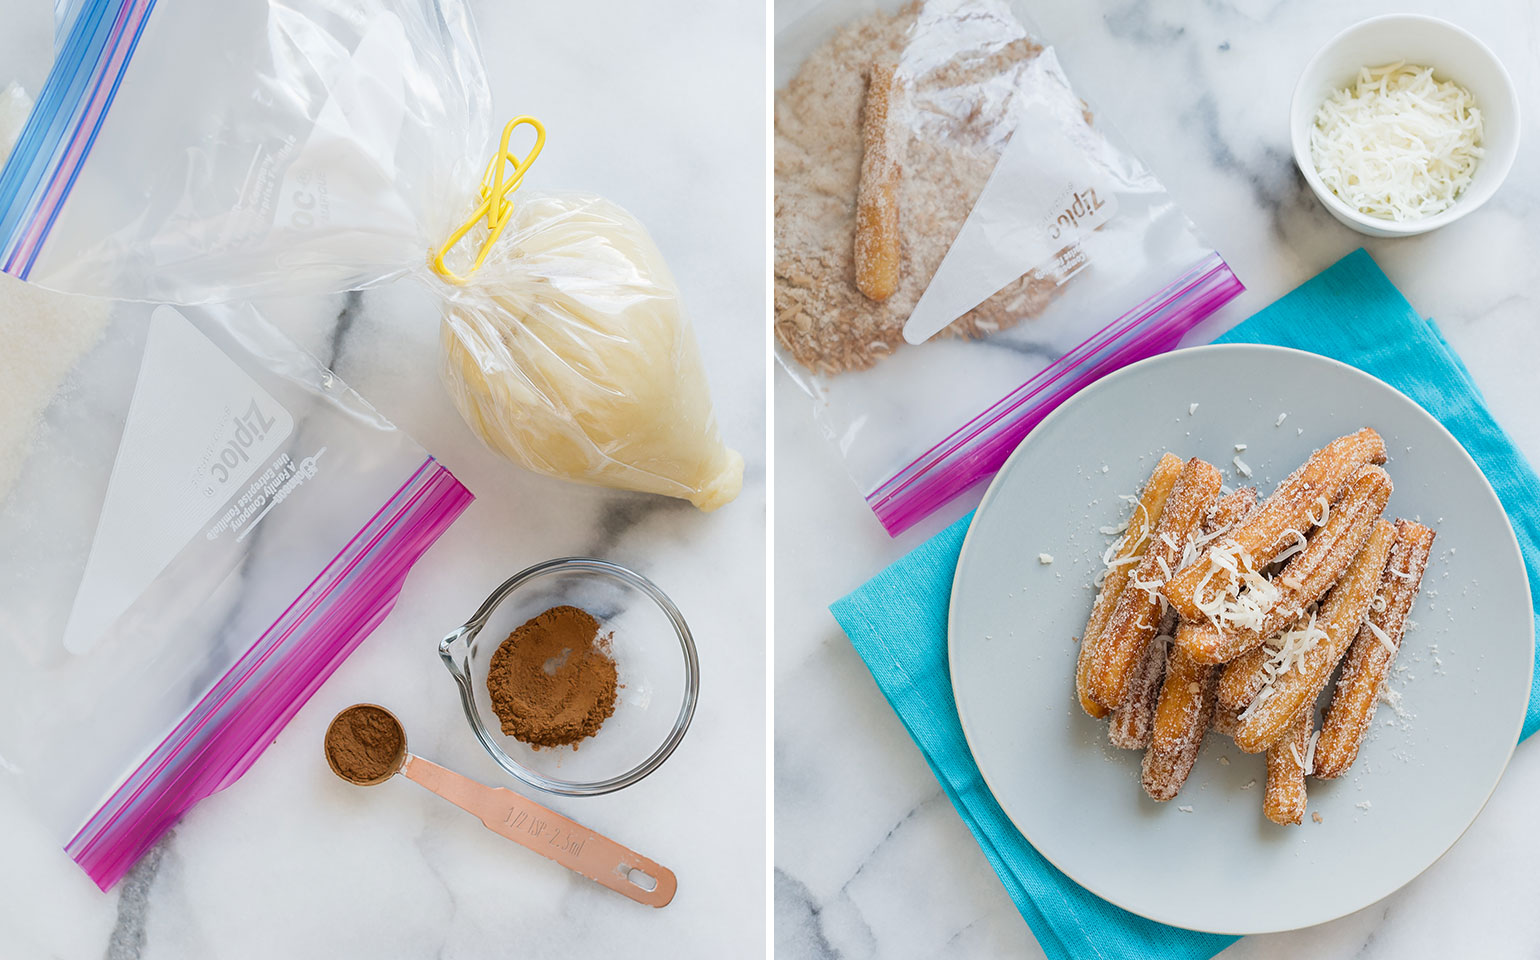 Simple Snacks with Latin Flavor